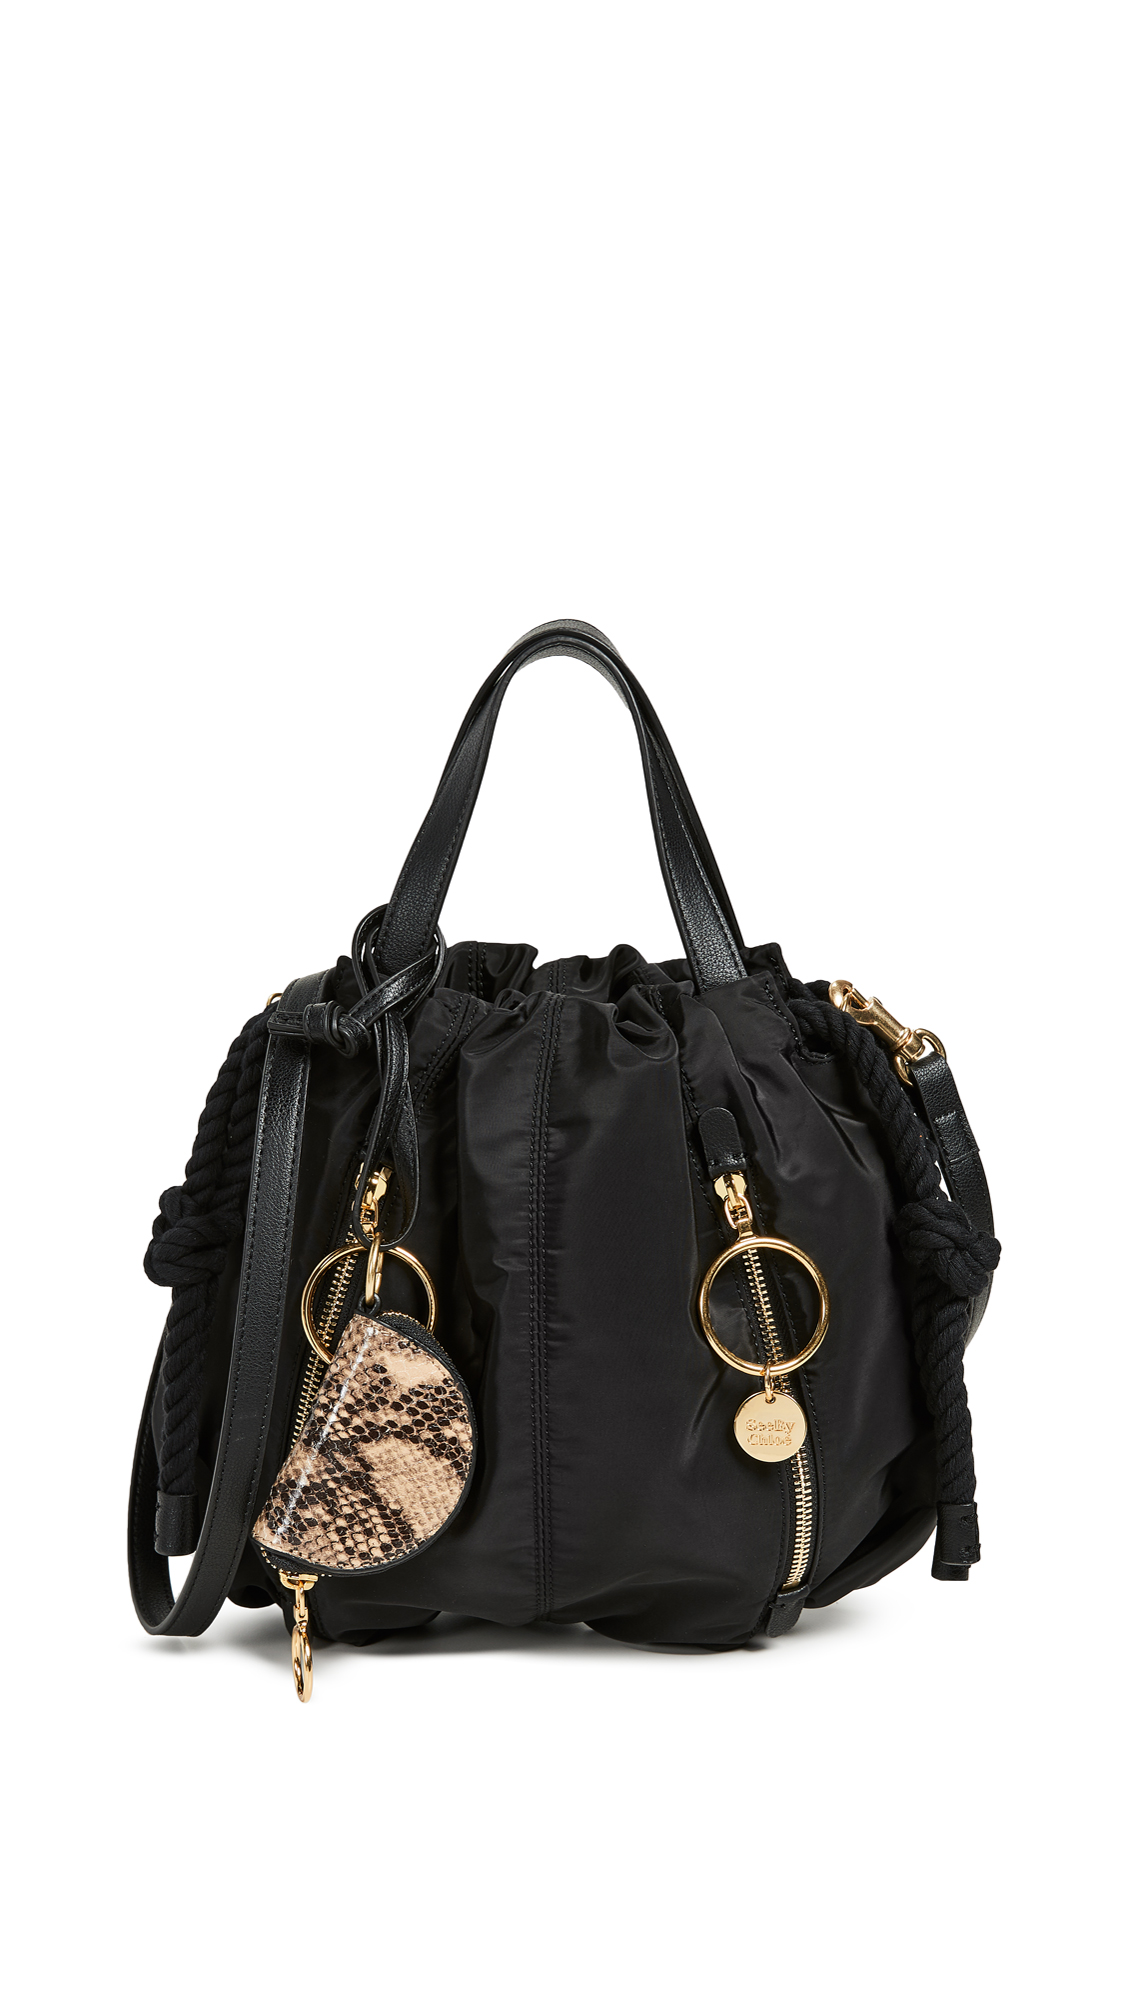 FLO SMALL TOTE from Shopbop